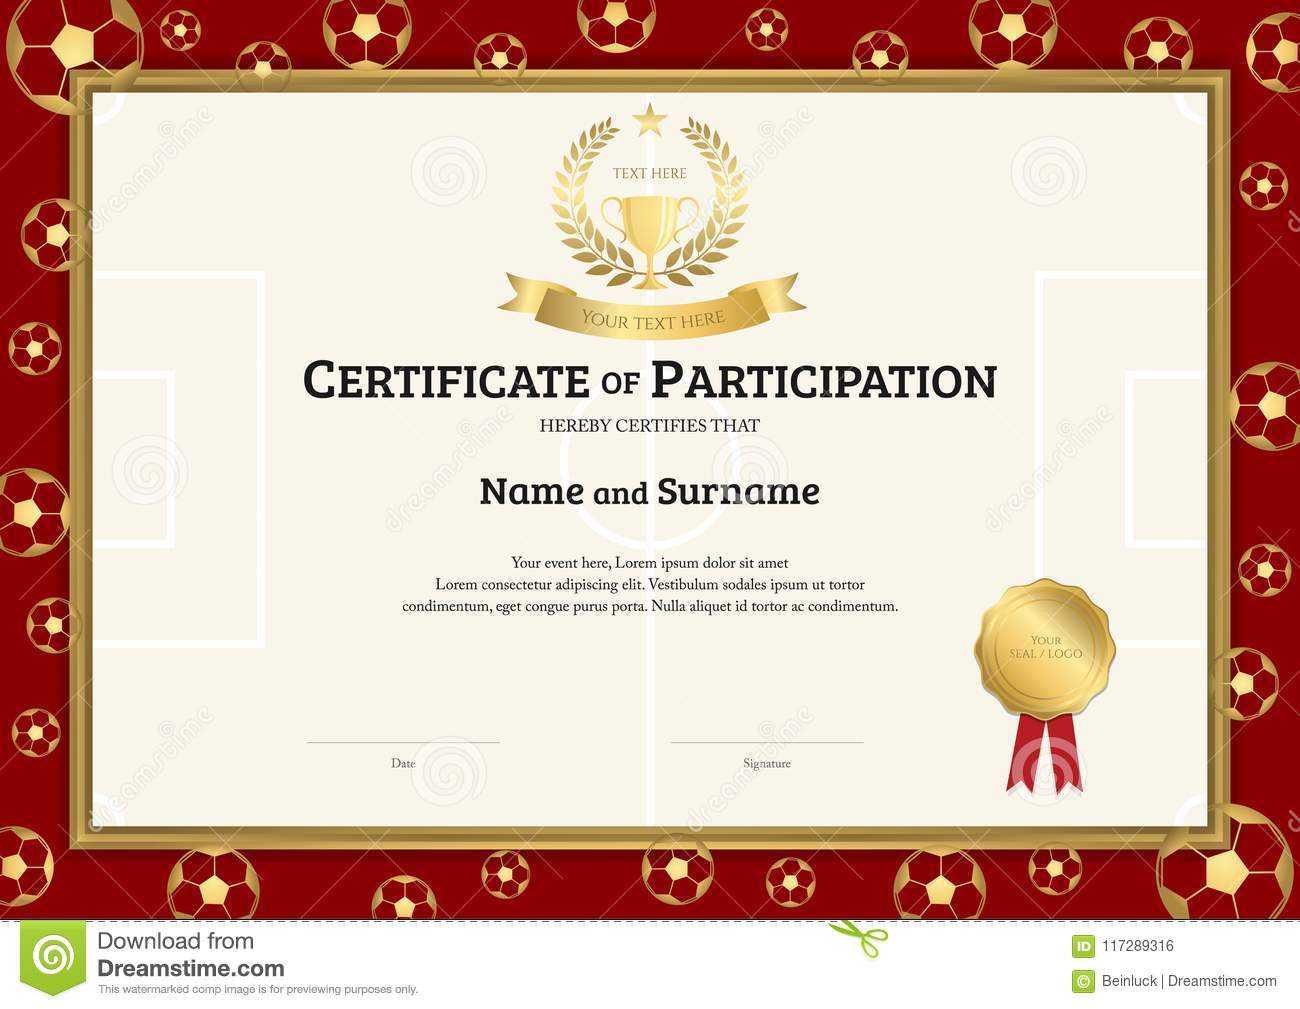 Rugby League Certificate Templates - Atlantaauctionco Pertaining To Rugby League Certificate Templates